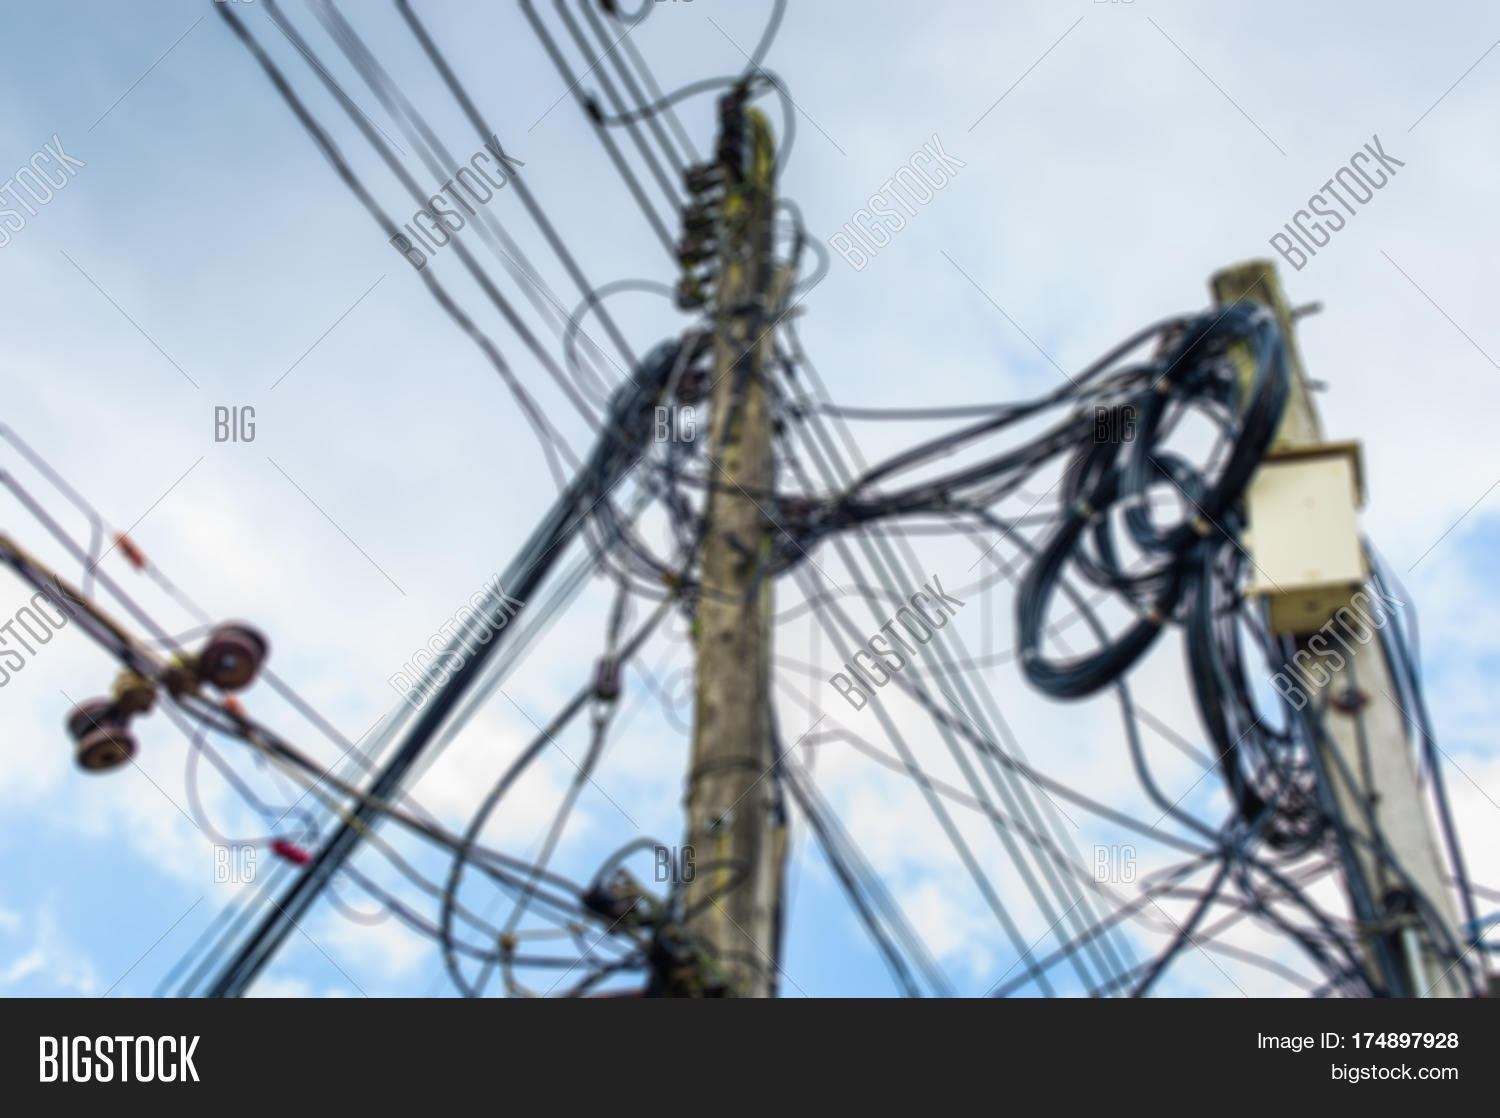 Blurred High Voltage Image & Photo (Free Trial) | Bigstock